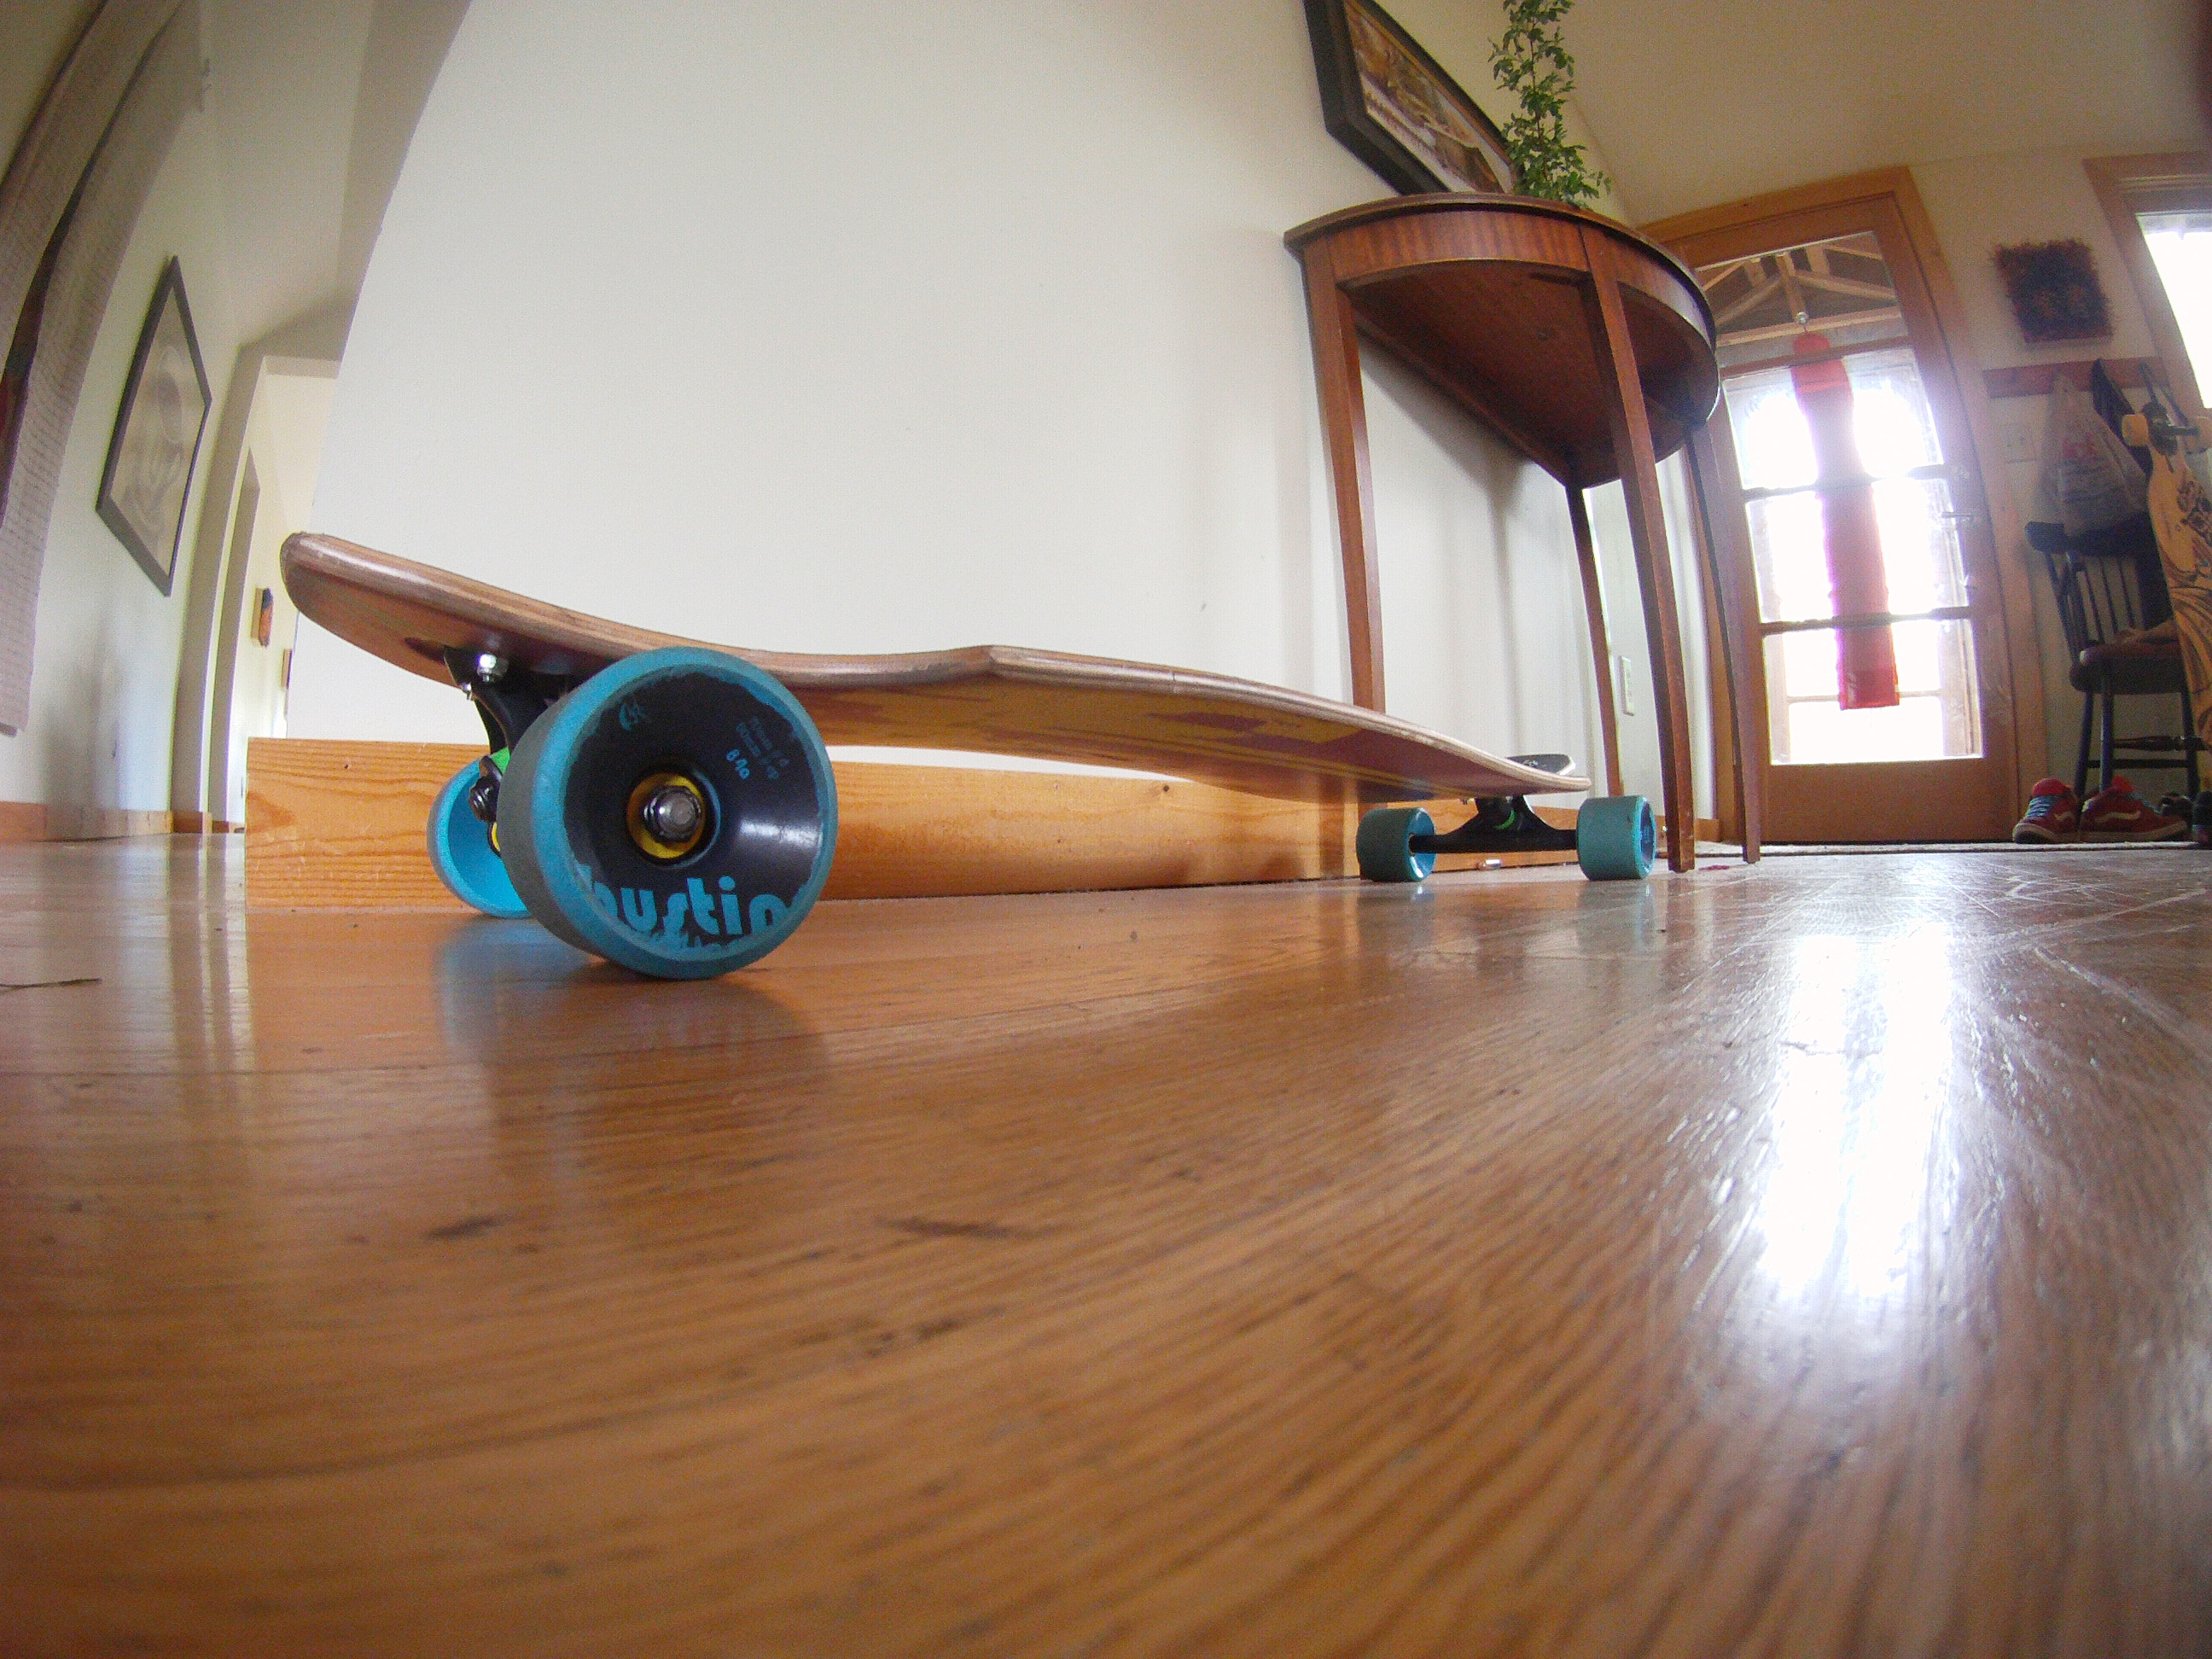 Bustin Maestro Longboard for sale...